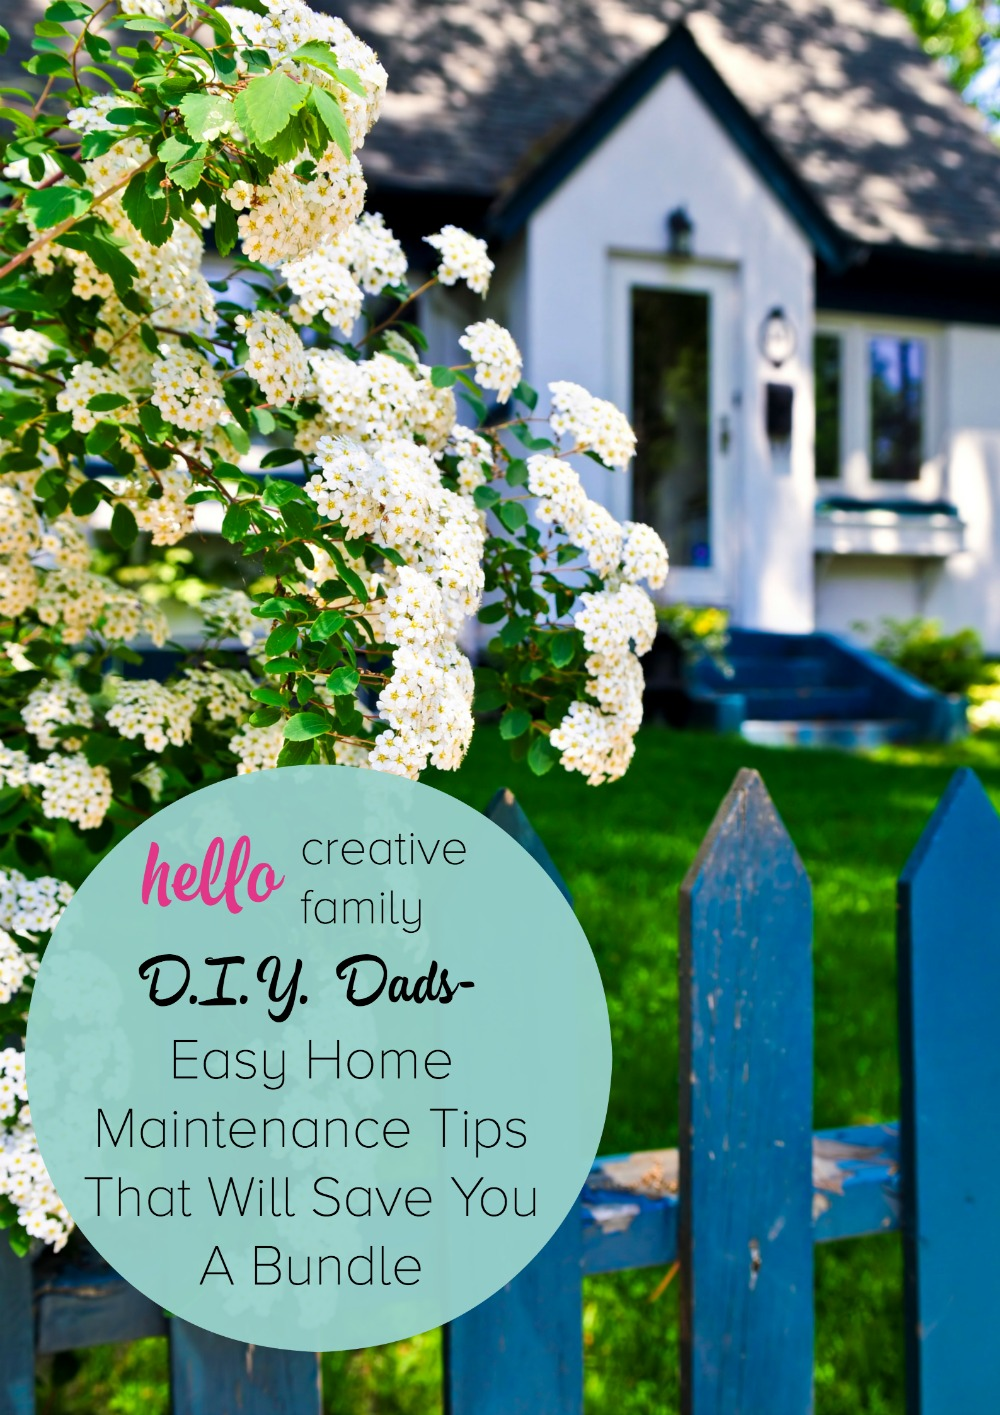 Hello Creative Family's DIY Dad, John Stone, shares Easy Home Maintenance Tips That Will Save You A Bundle